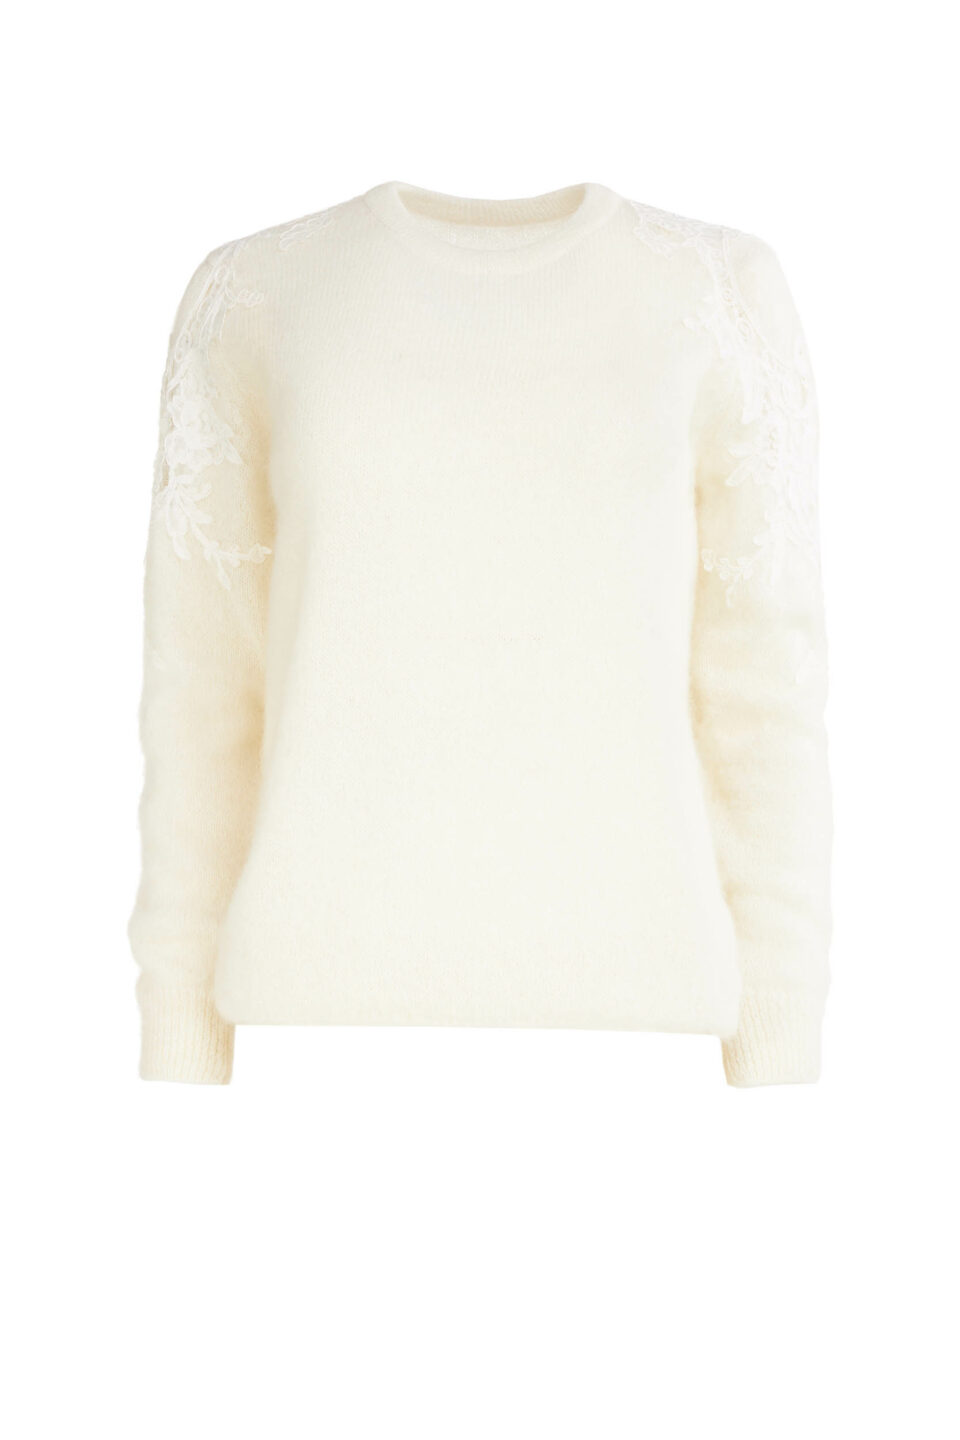 Mattie FW2181 White Sustainable Mohair Knit Sweater with Corded Lace Shoulder Appliques